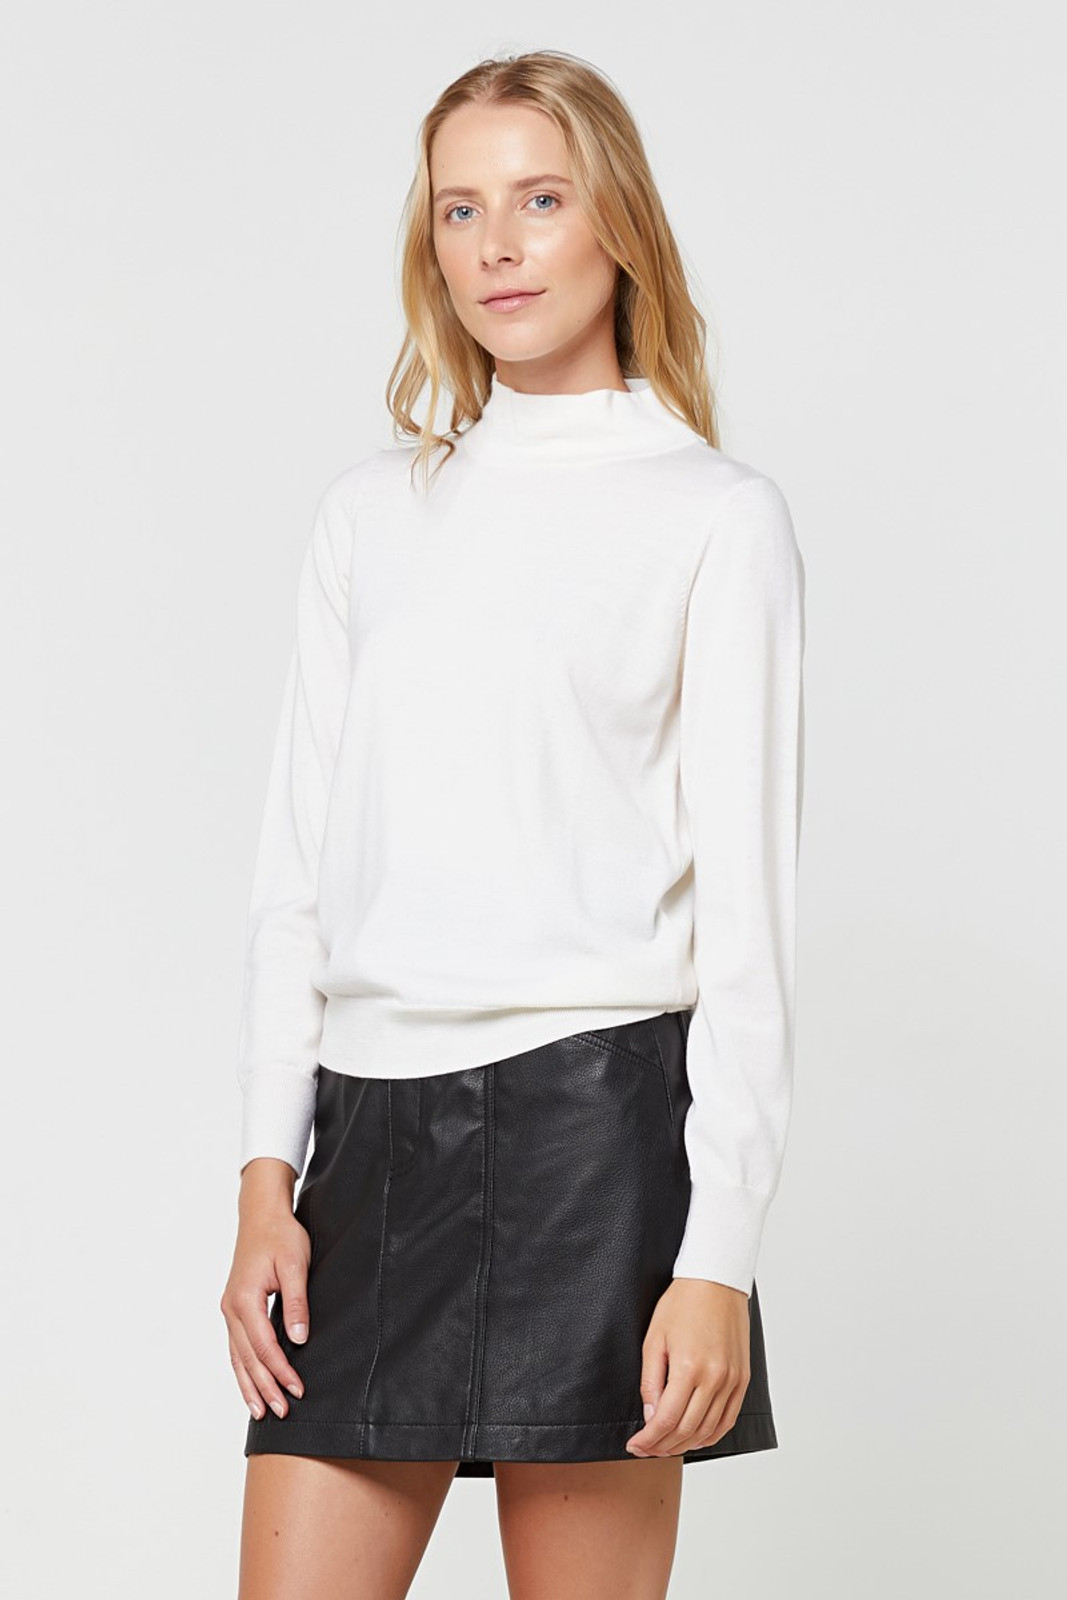 Elka Collective Rory Knit Neutrals  7